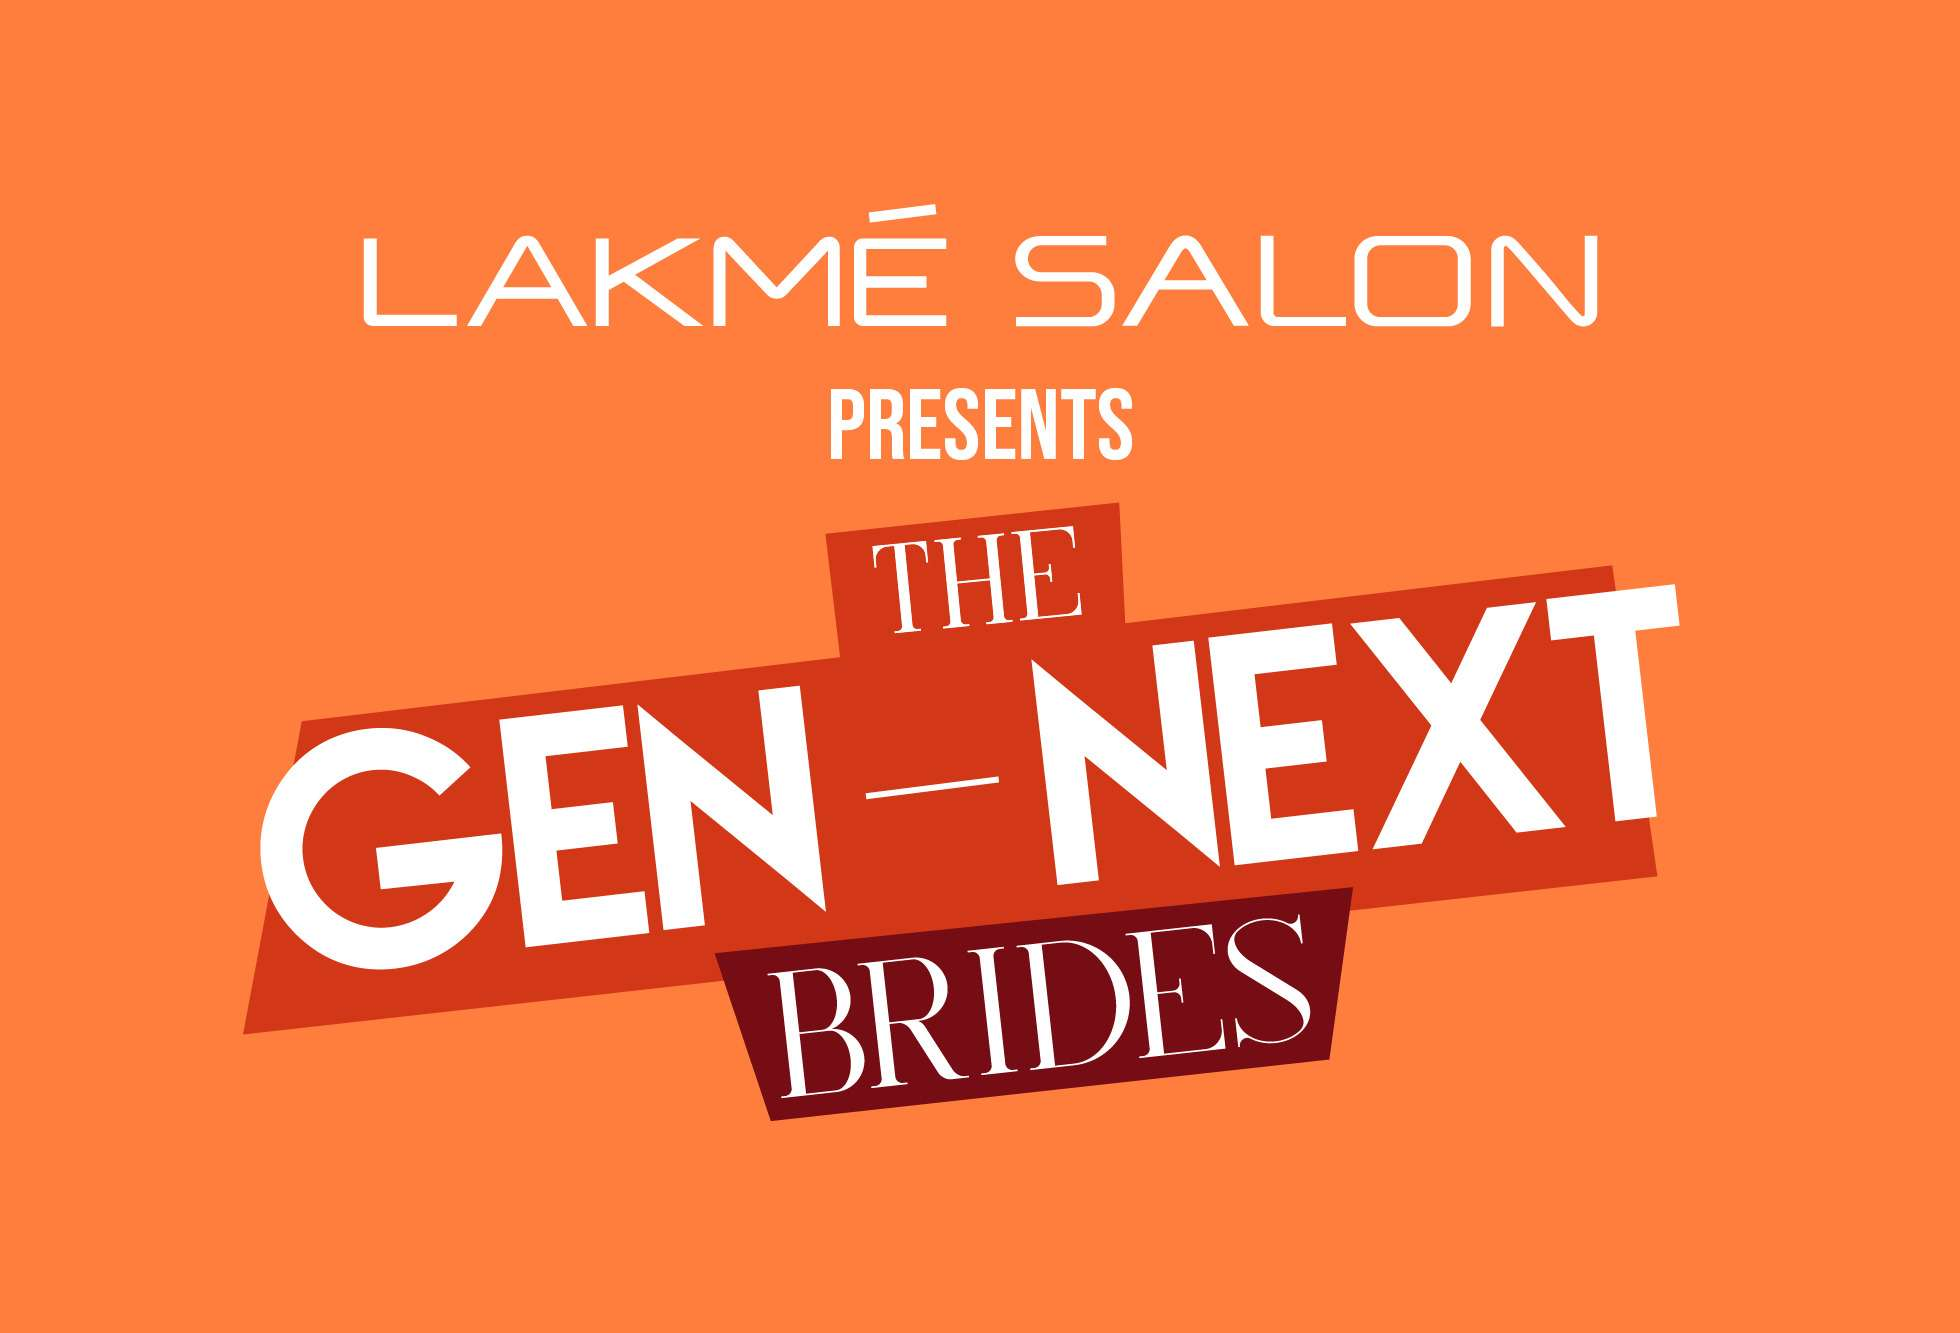 Lakme Salon - Bridal Lookbook - The Gen-Next Bride